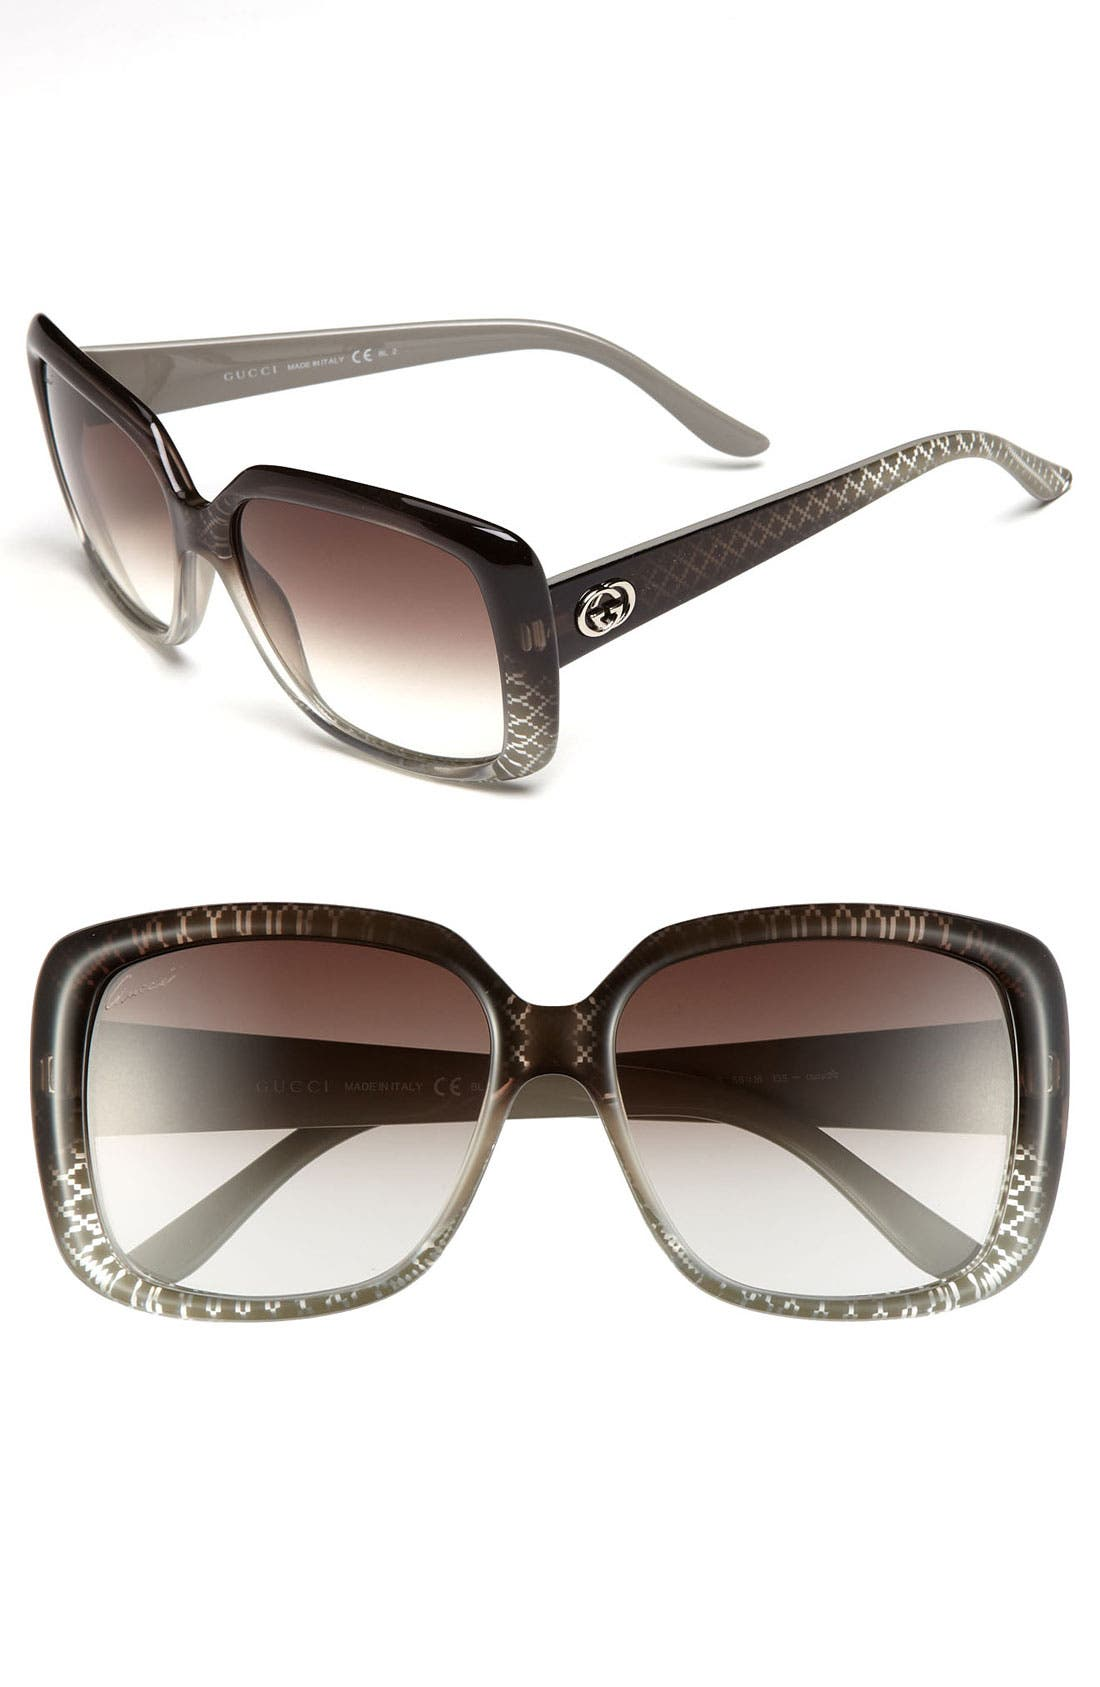 Main Image - Gucci 56mm Sunglasses